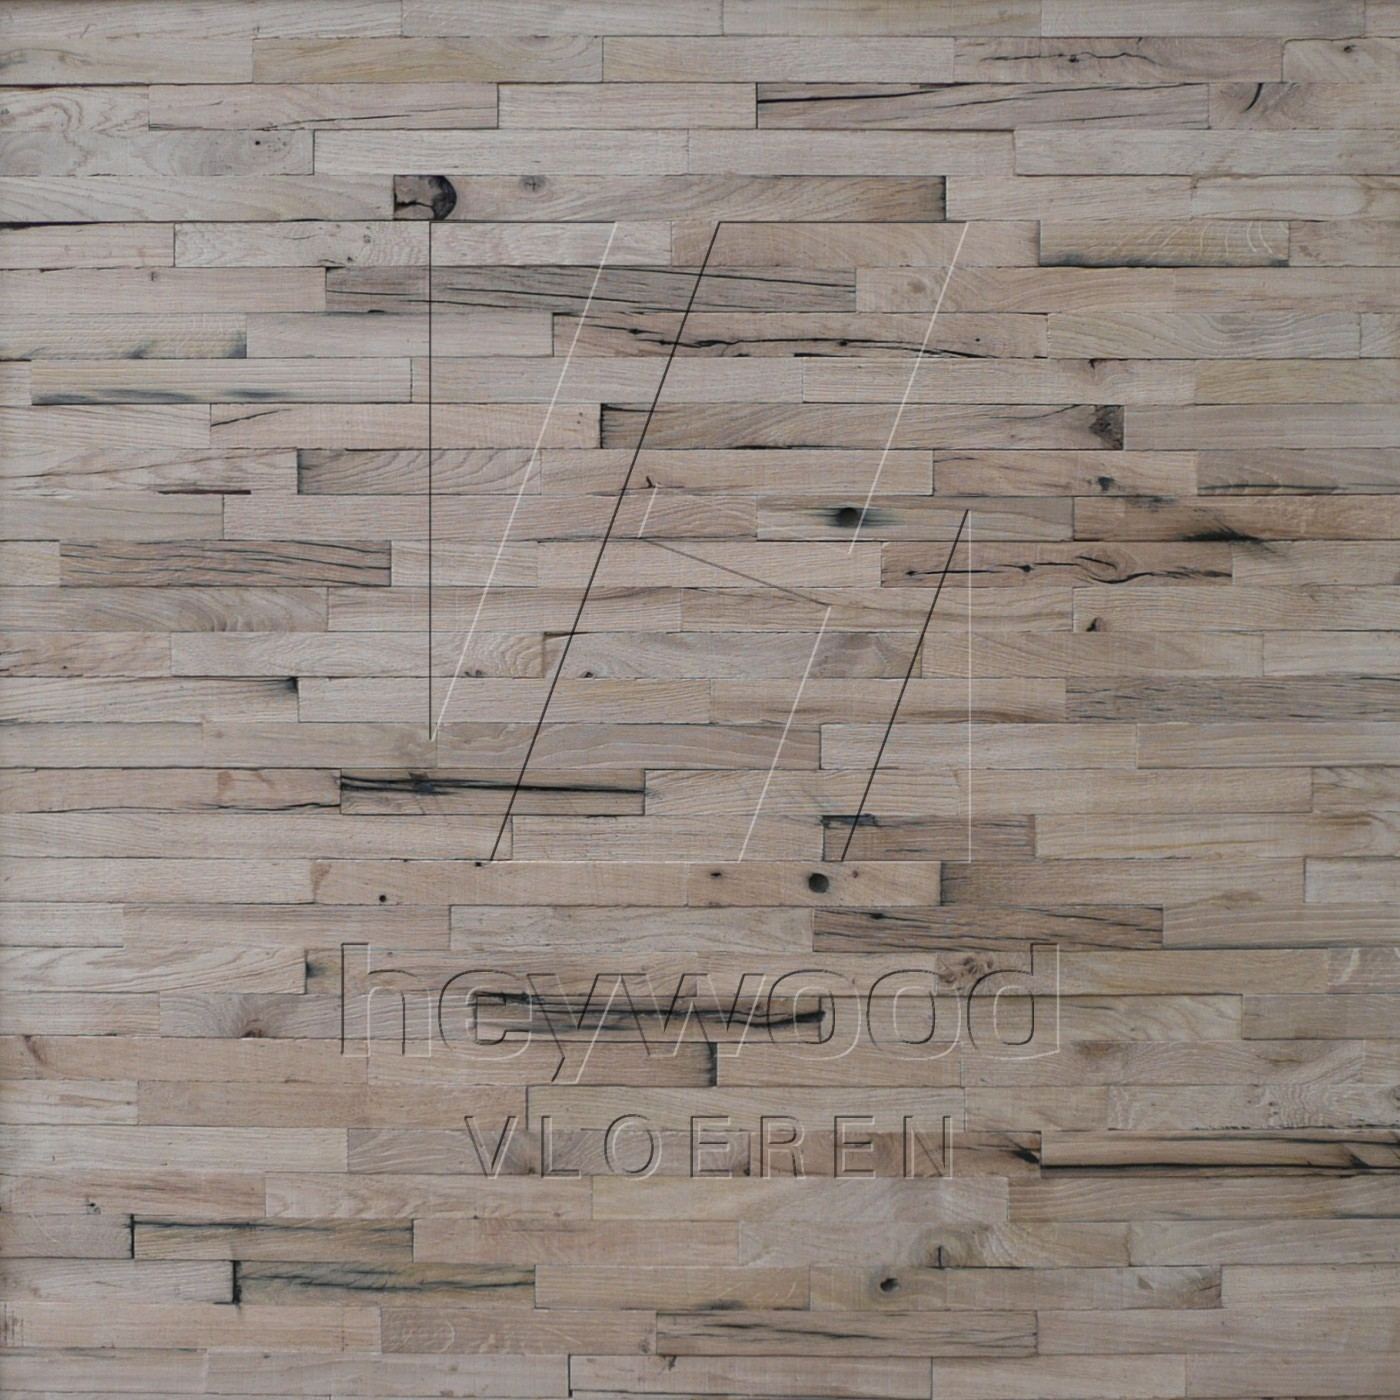 Stellenbosch 3D Wall Panel (unoiled) in Pattern & Panels (Outsides / Insides) of Old Reclaimed Wood